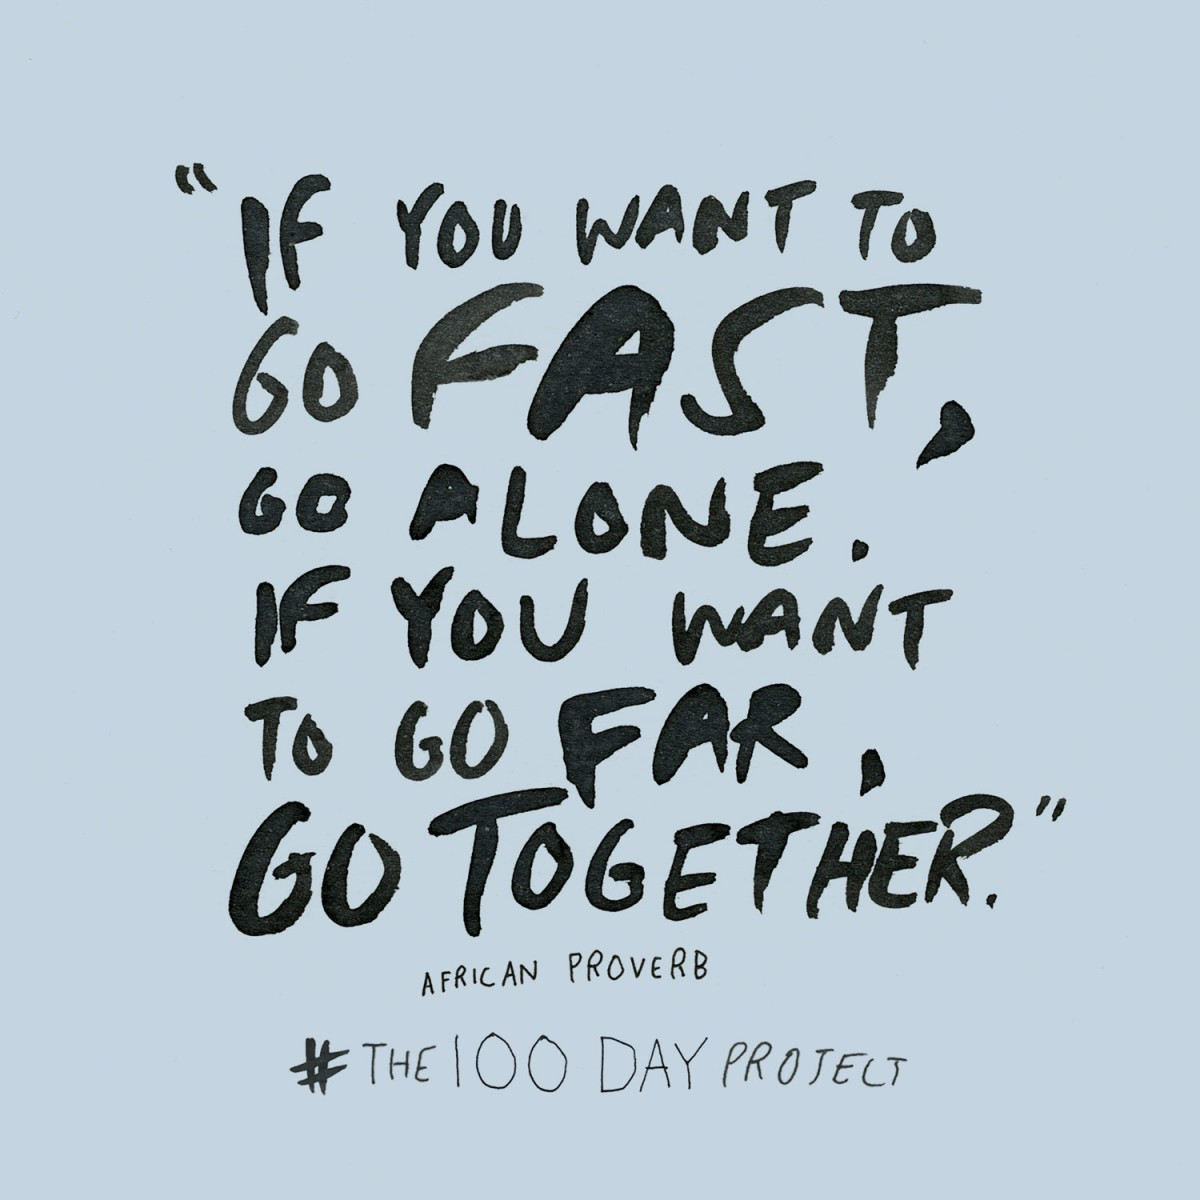 If you want to go fast, go alone.  If you want to go far? Go together.